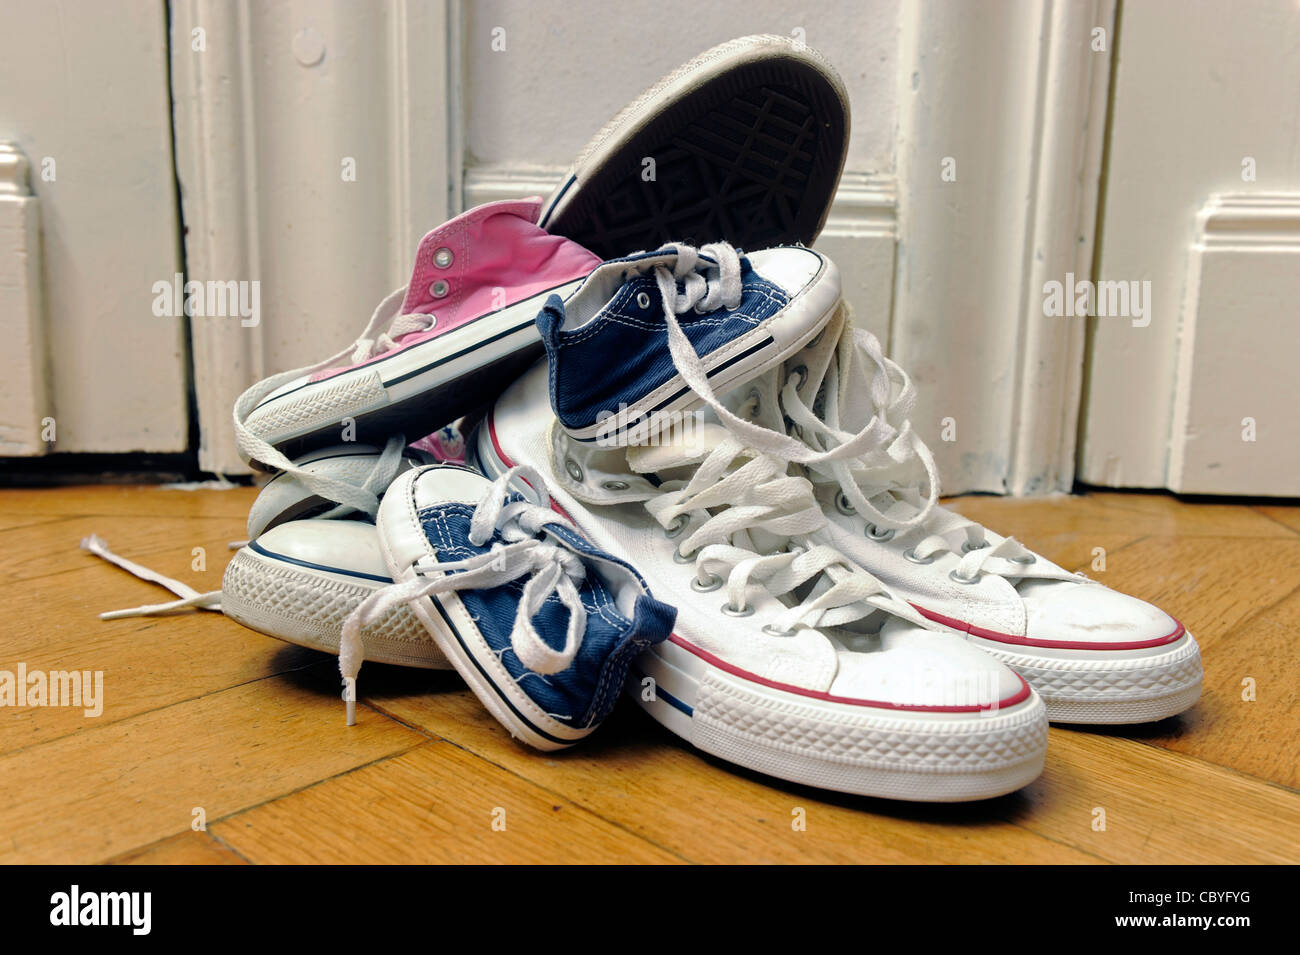 Shoes in different sizes. Stock Photo